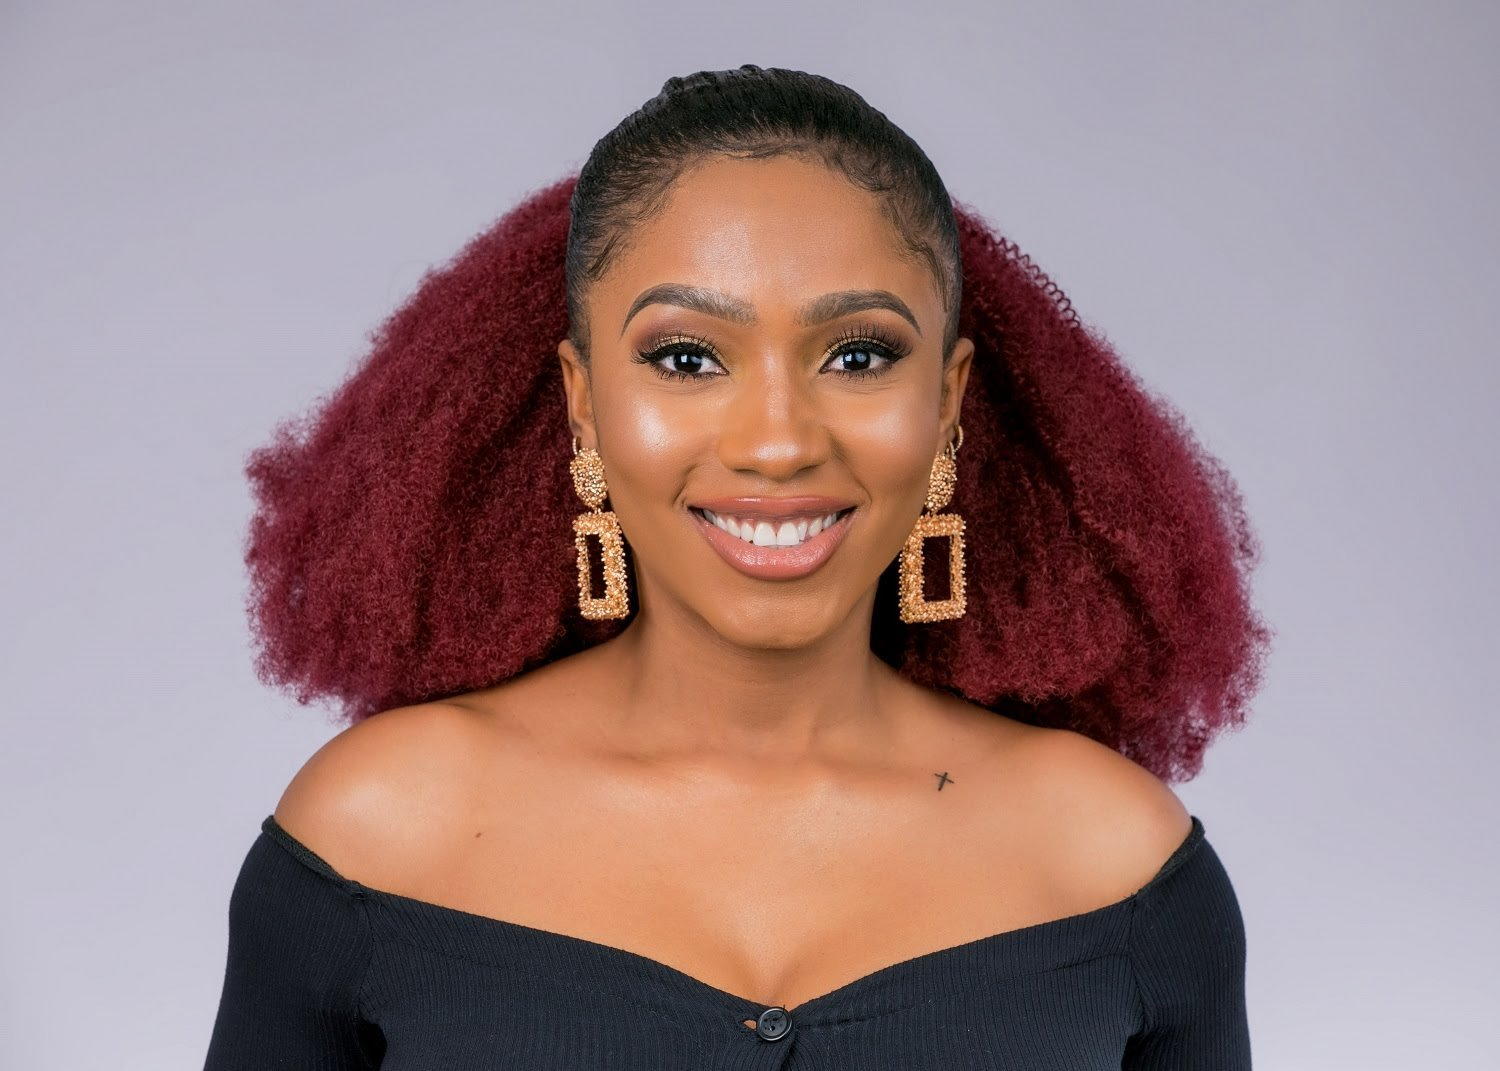 Mercy Eke: A thrilling journey from obscurity to fame